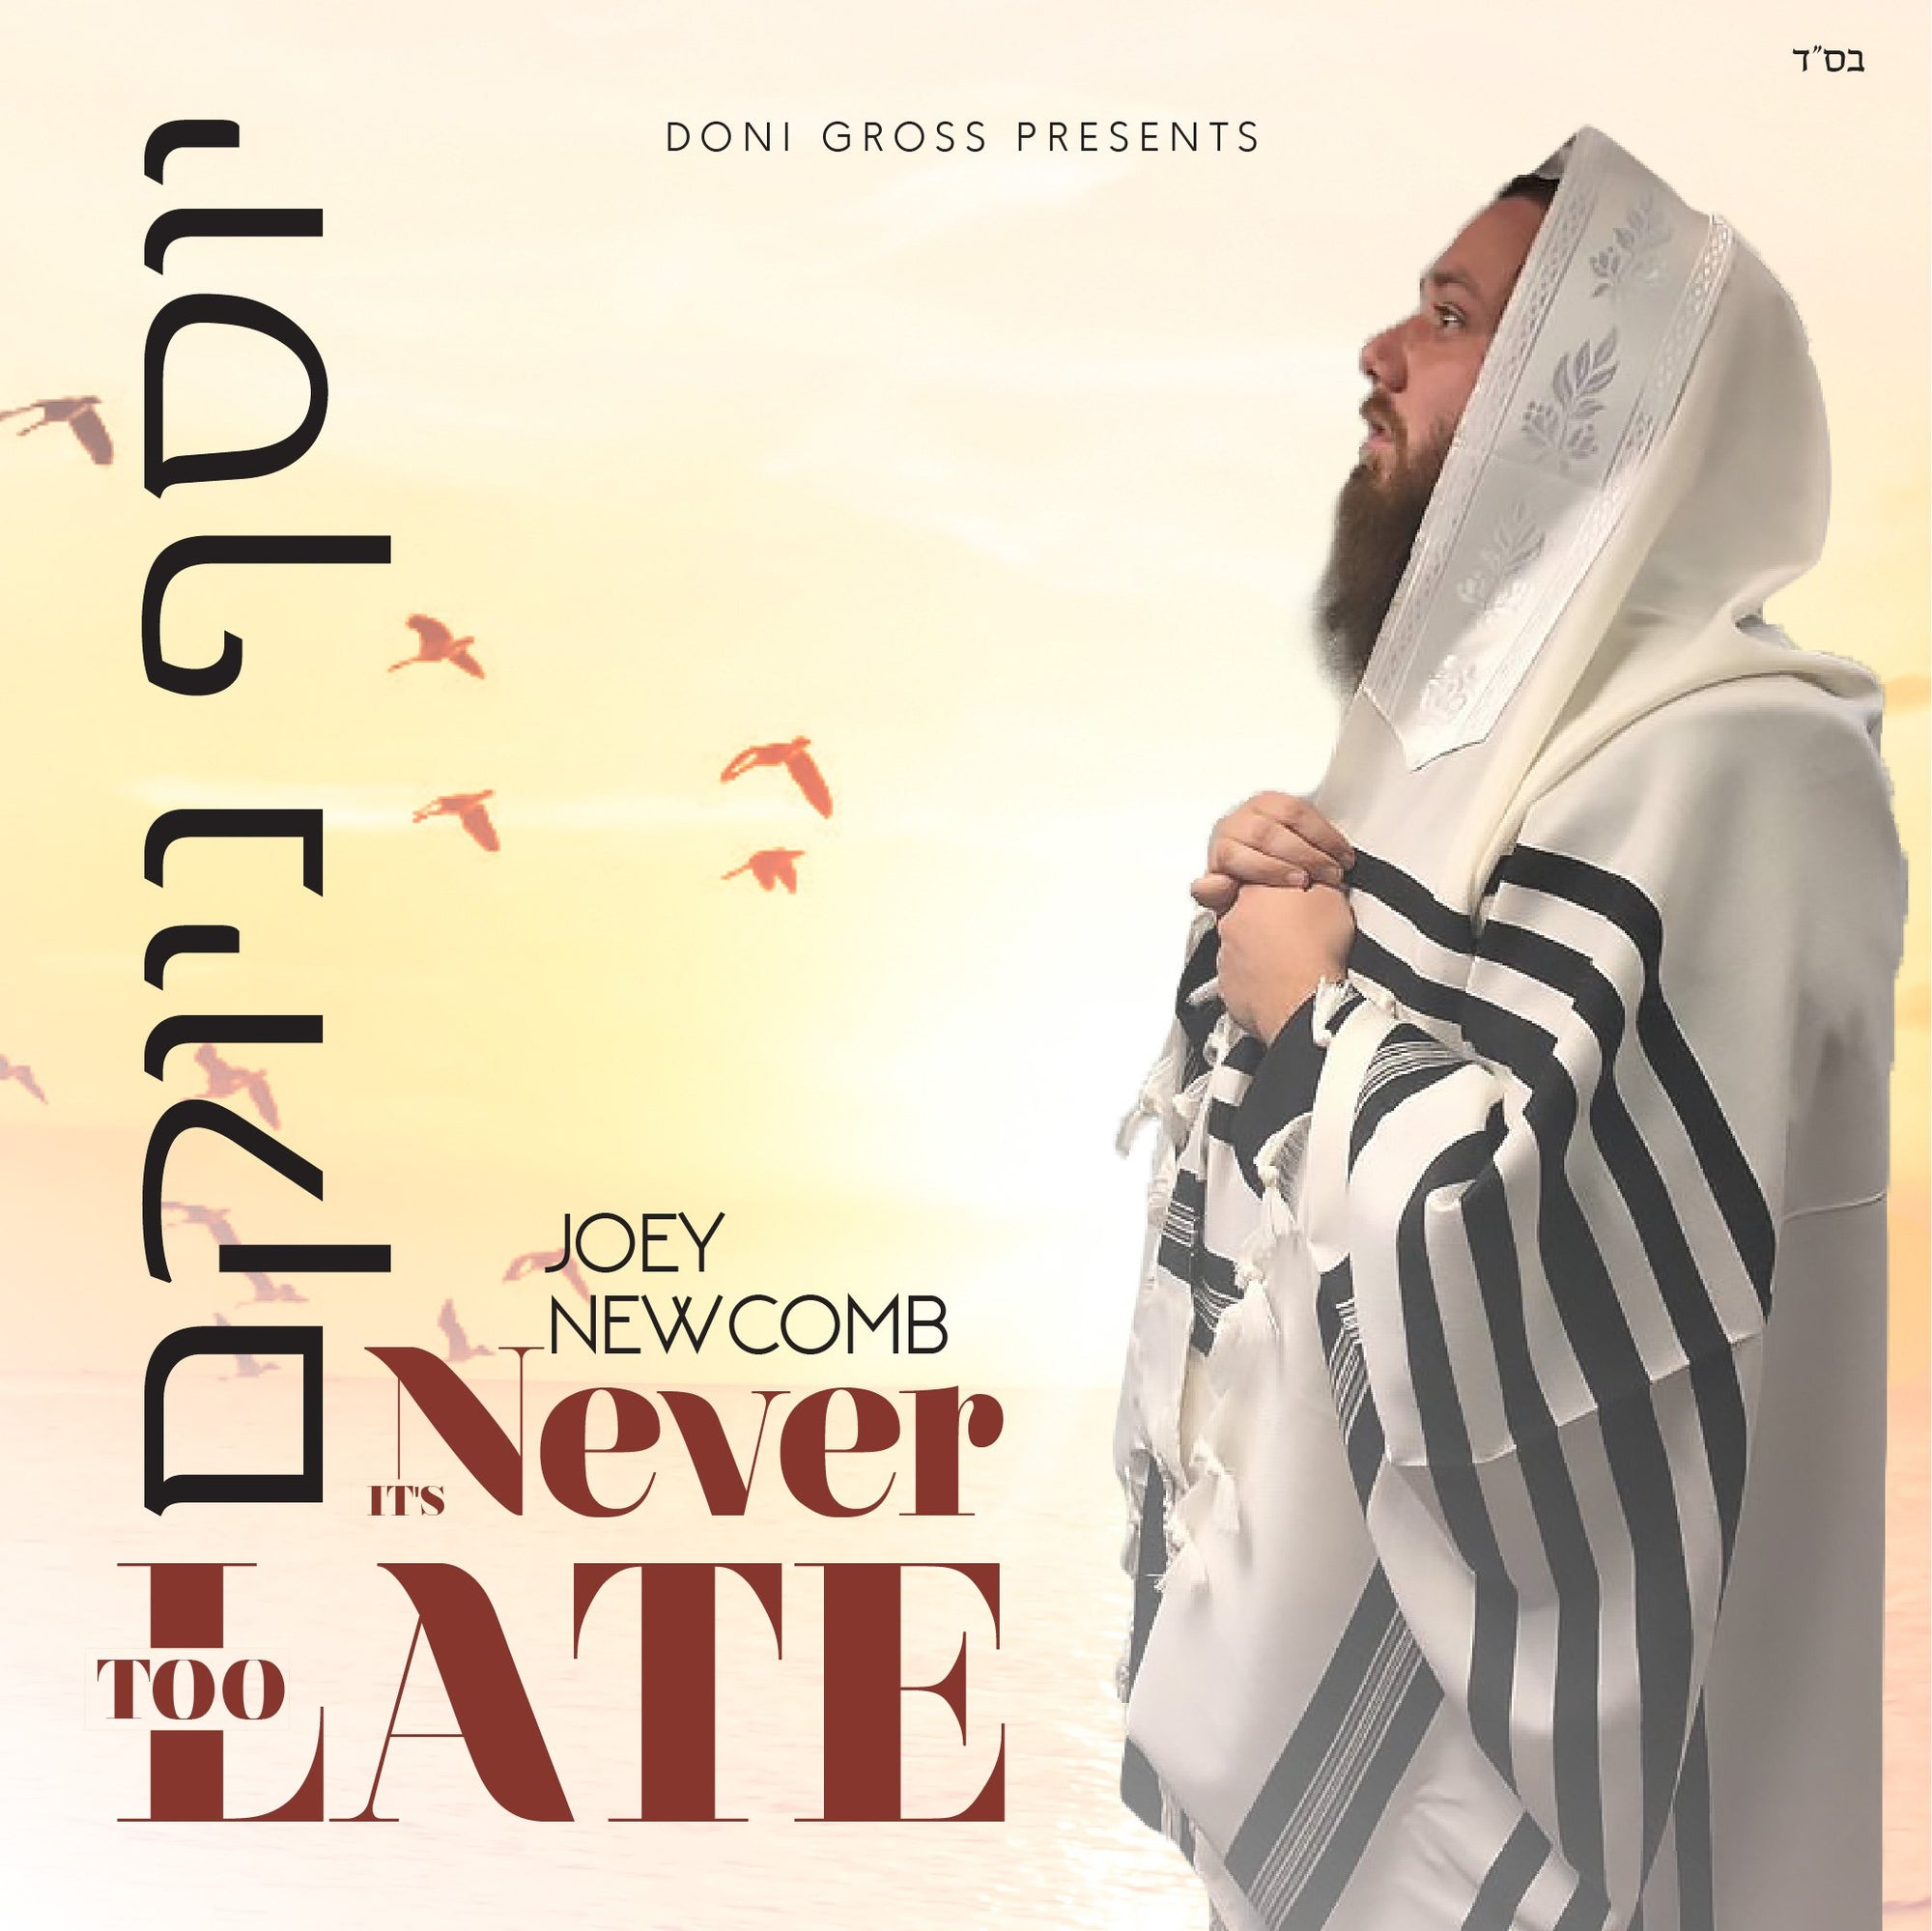 Joey Newcomb - It's Never Too Late (Single)